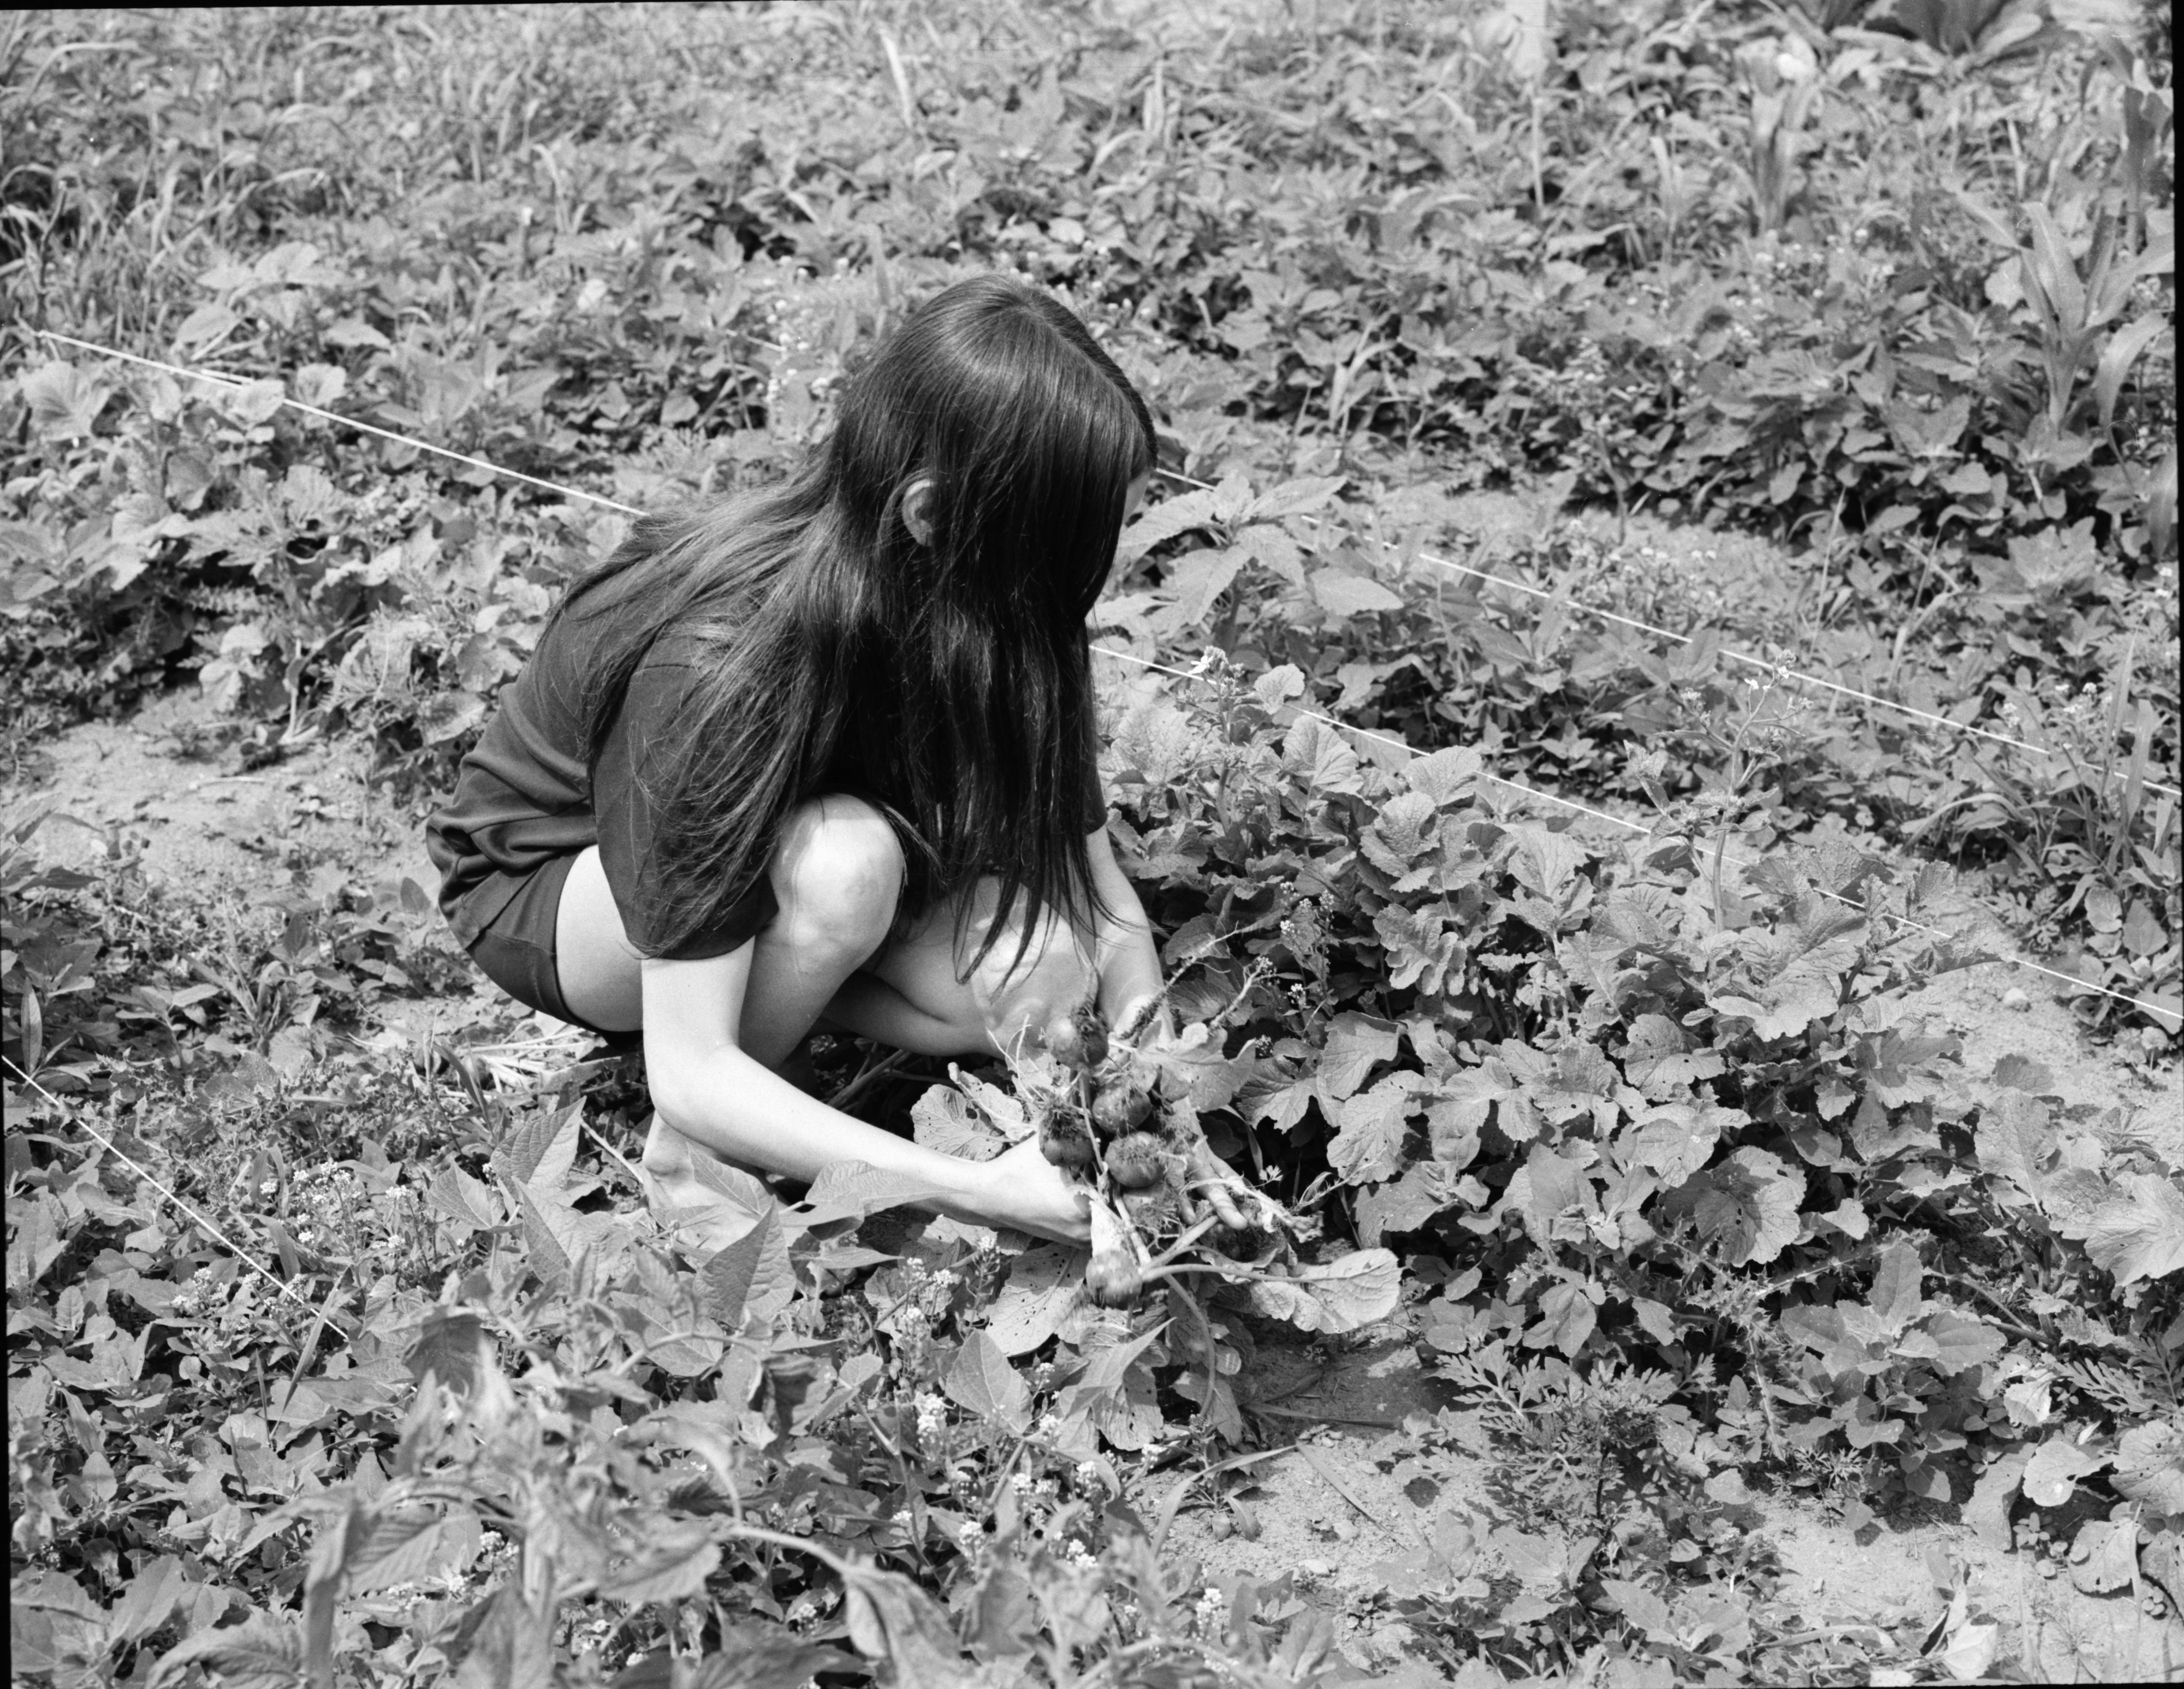 Project Grow, Washtenaw County Juvenile Court Children Working On Gardens, July 1972 image